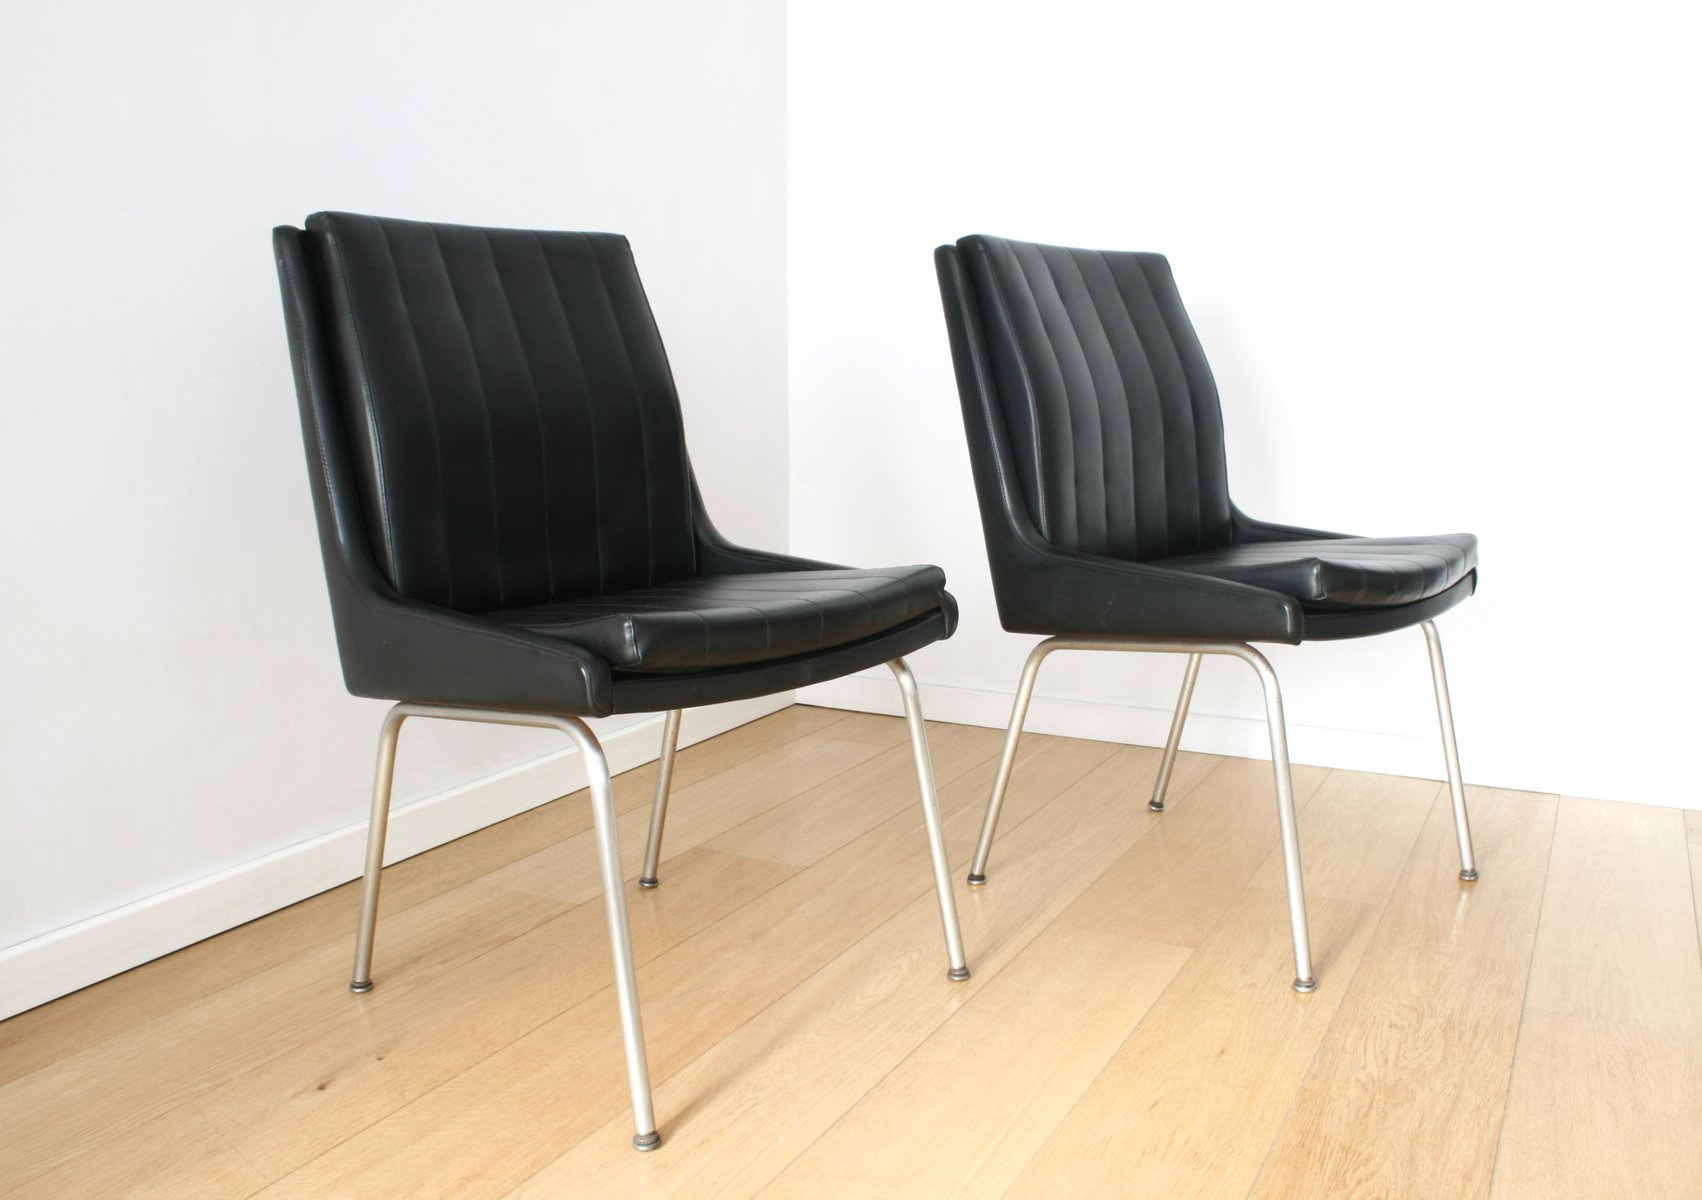 conference chairs for sale chair bed ikea mid century by martin stoll giroflex